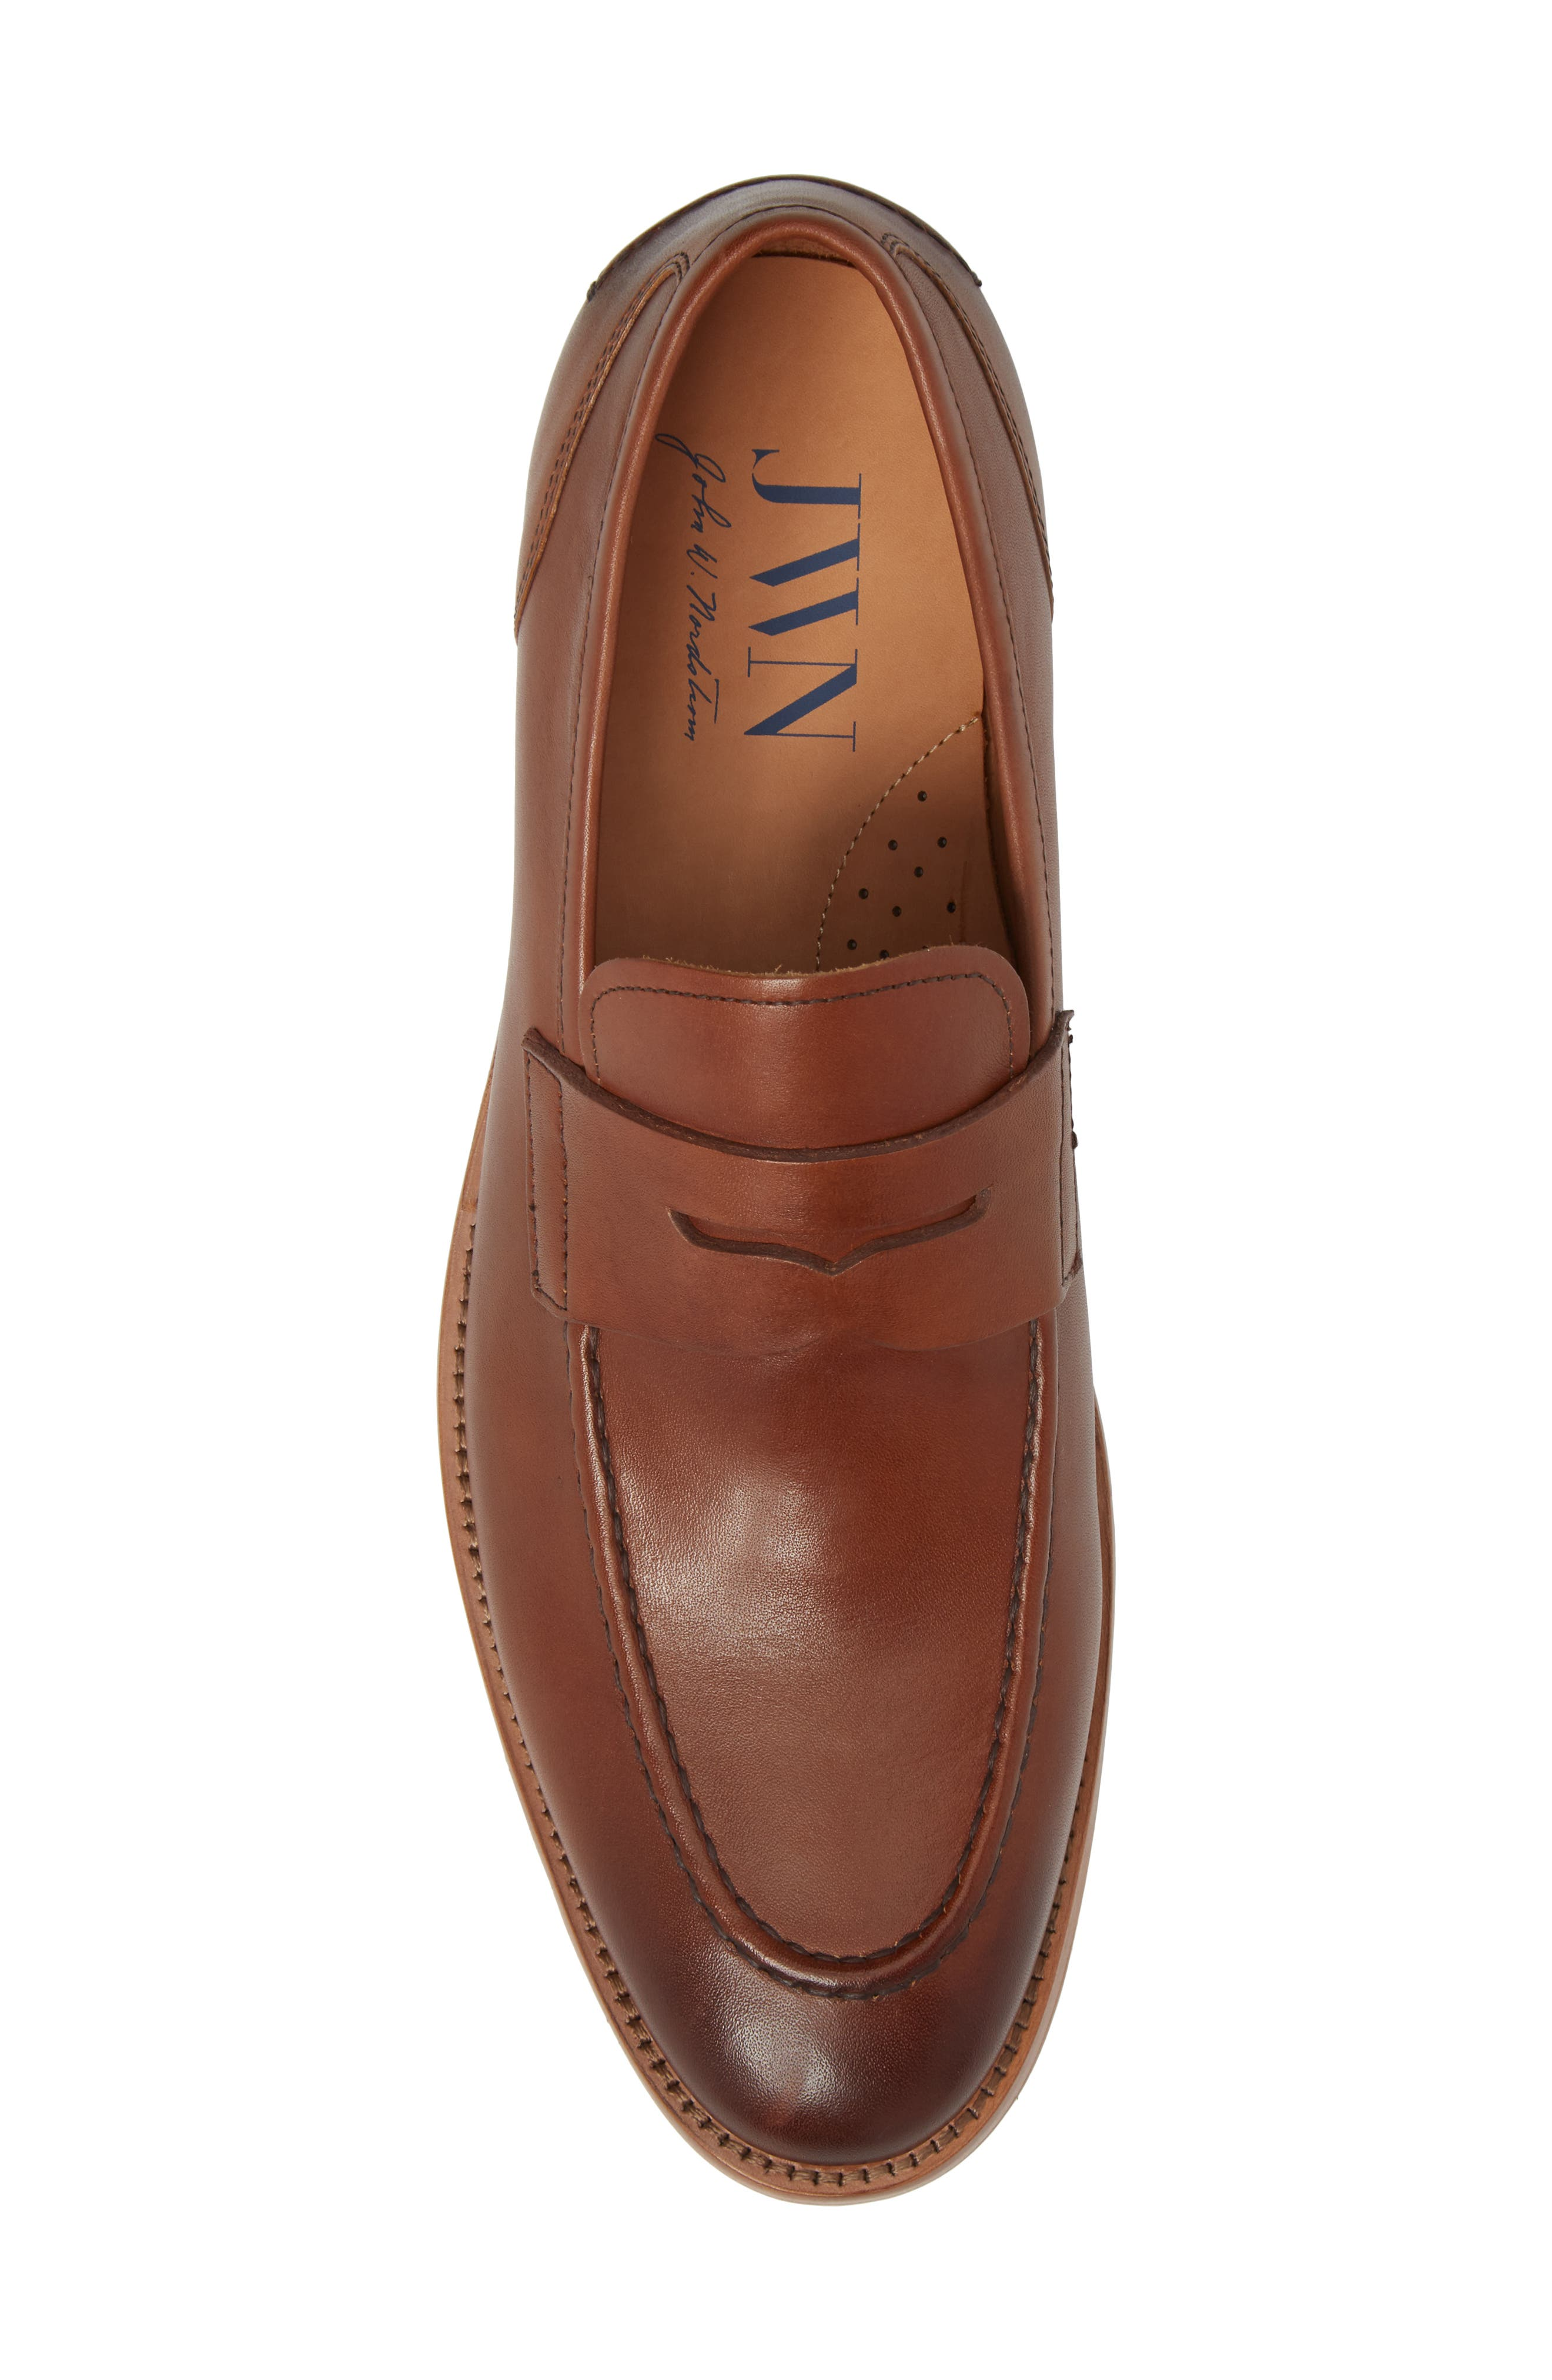 Lucas Loafer,                             Alternate thumbnail 5, color,                             Luggage Leather